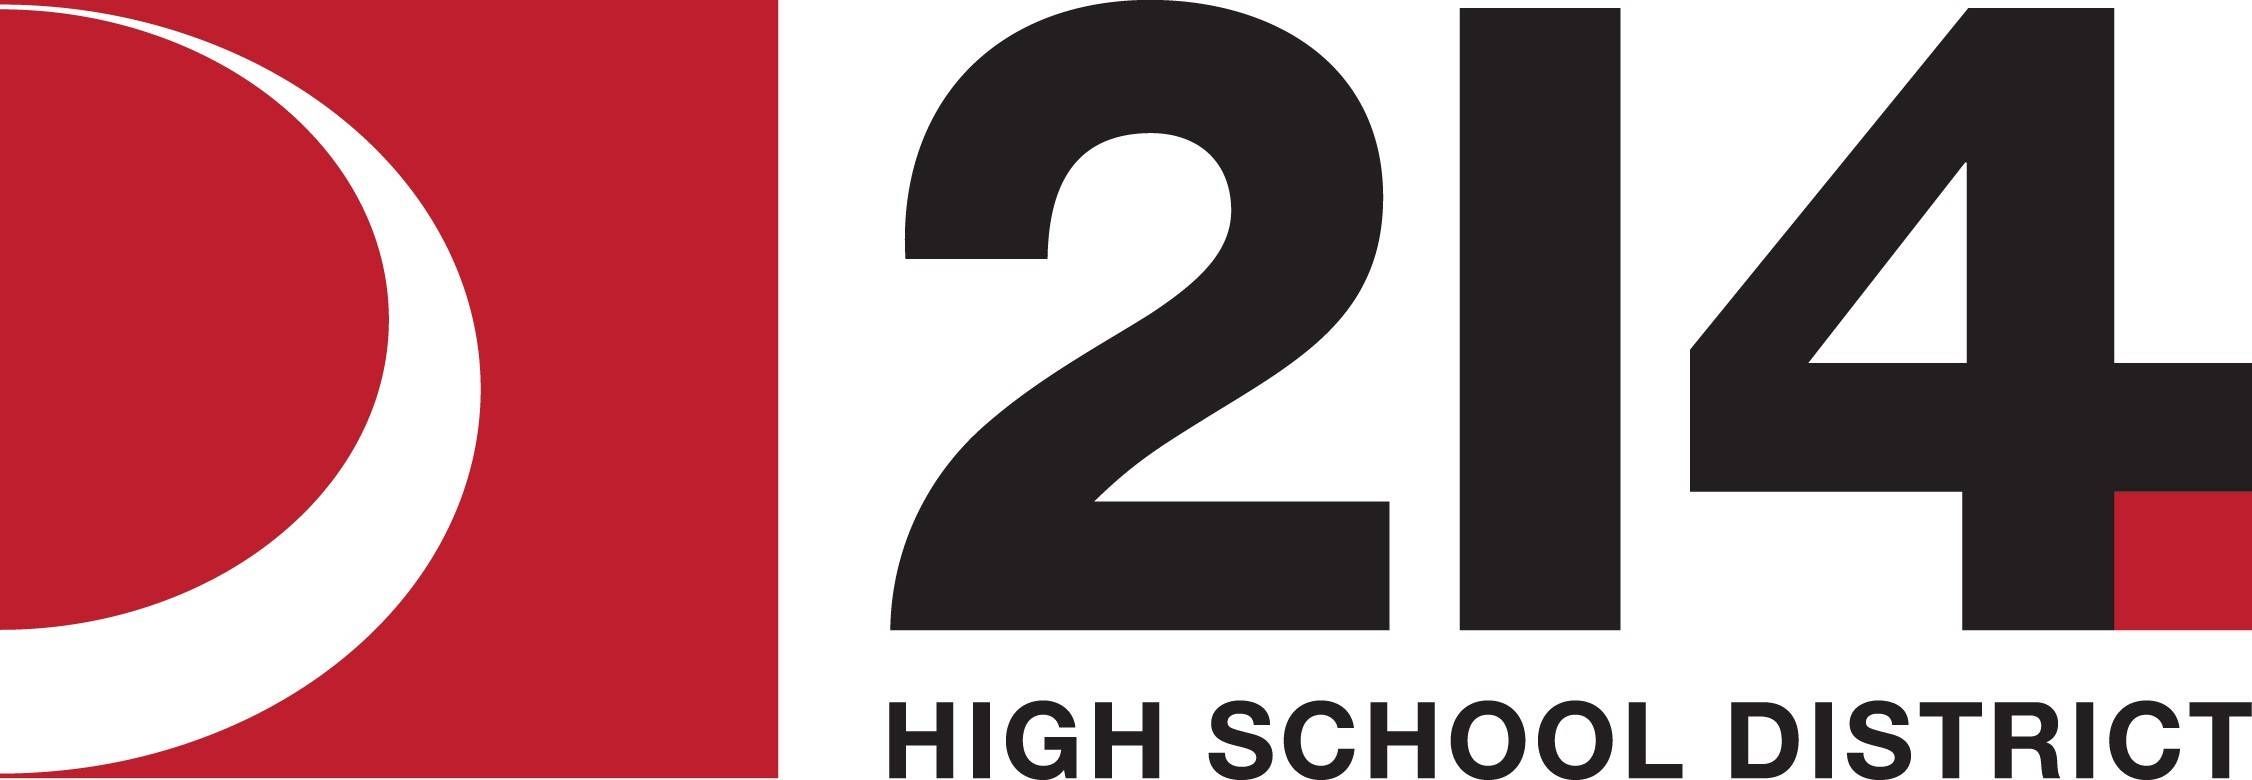 The new logo for District 214